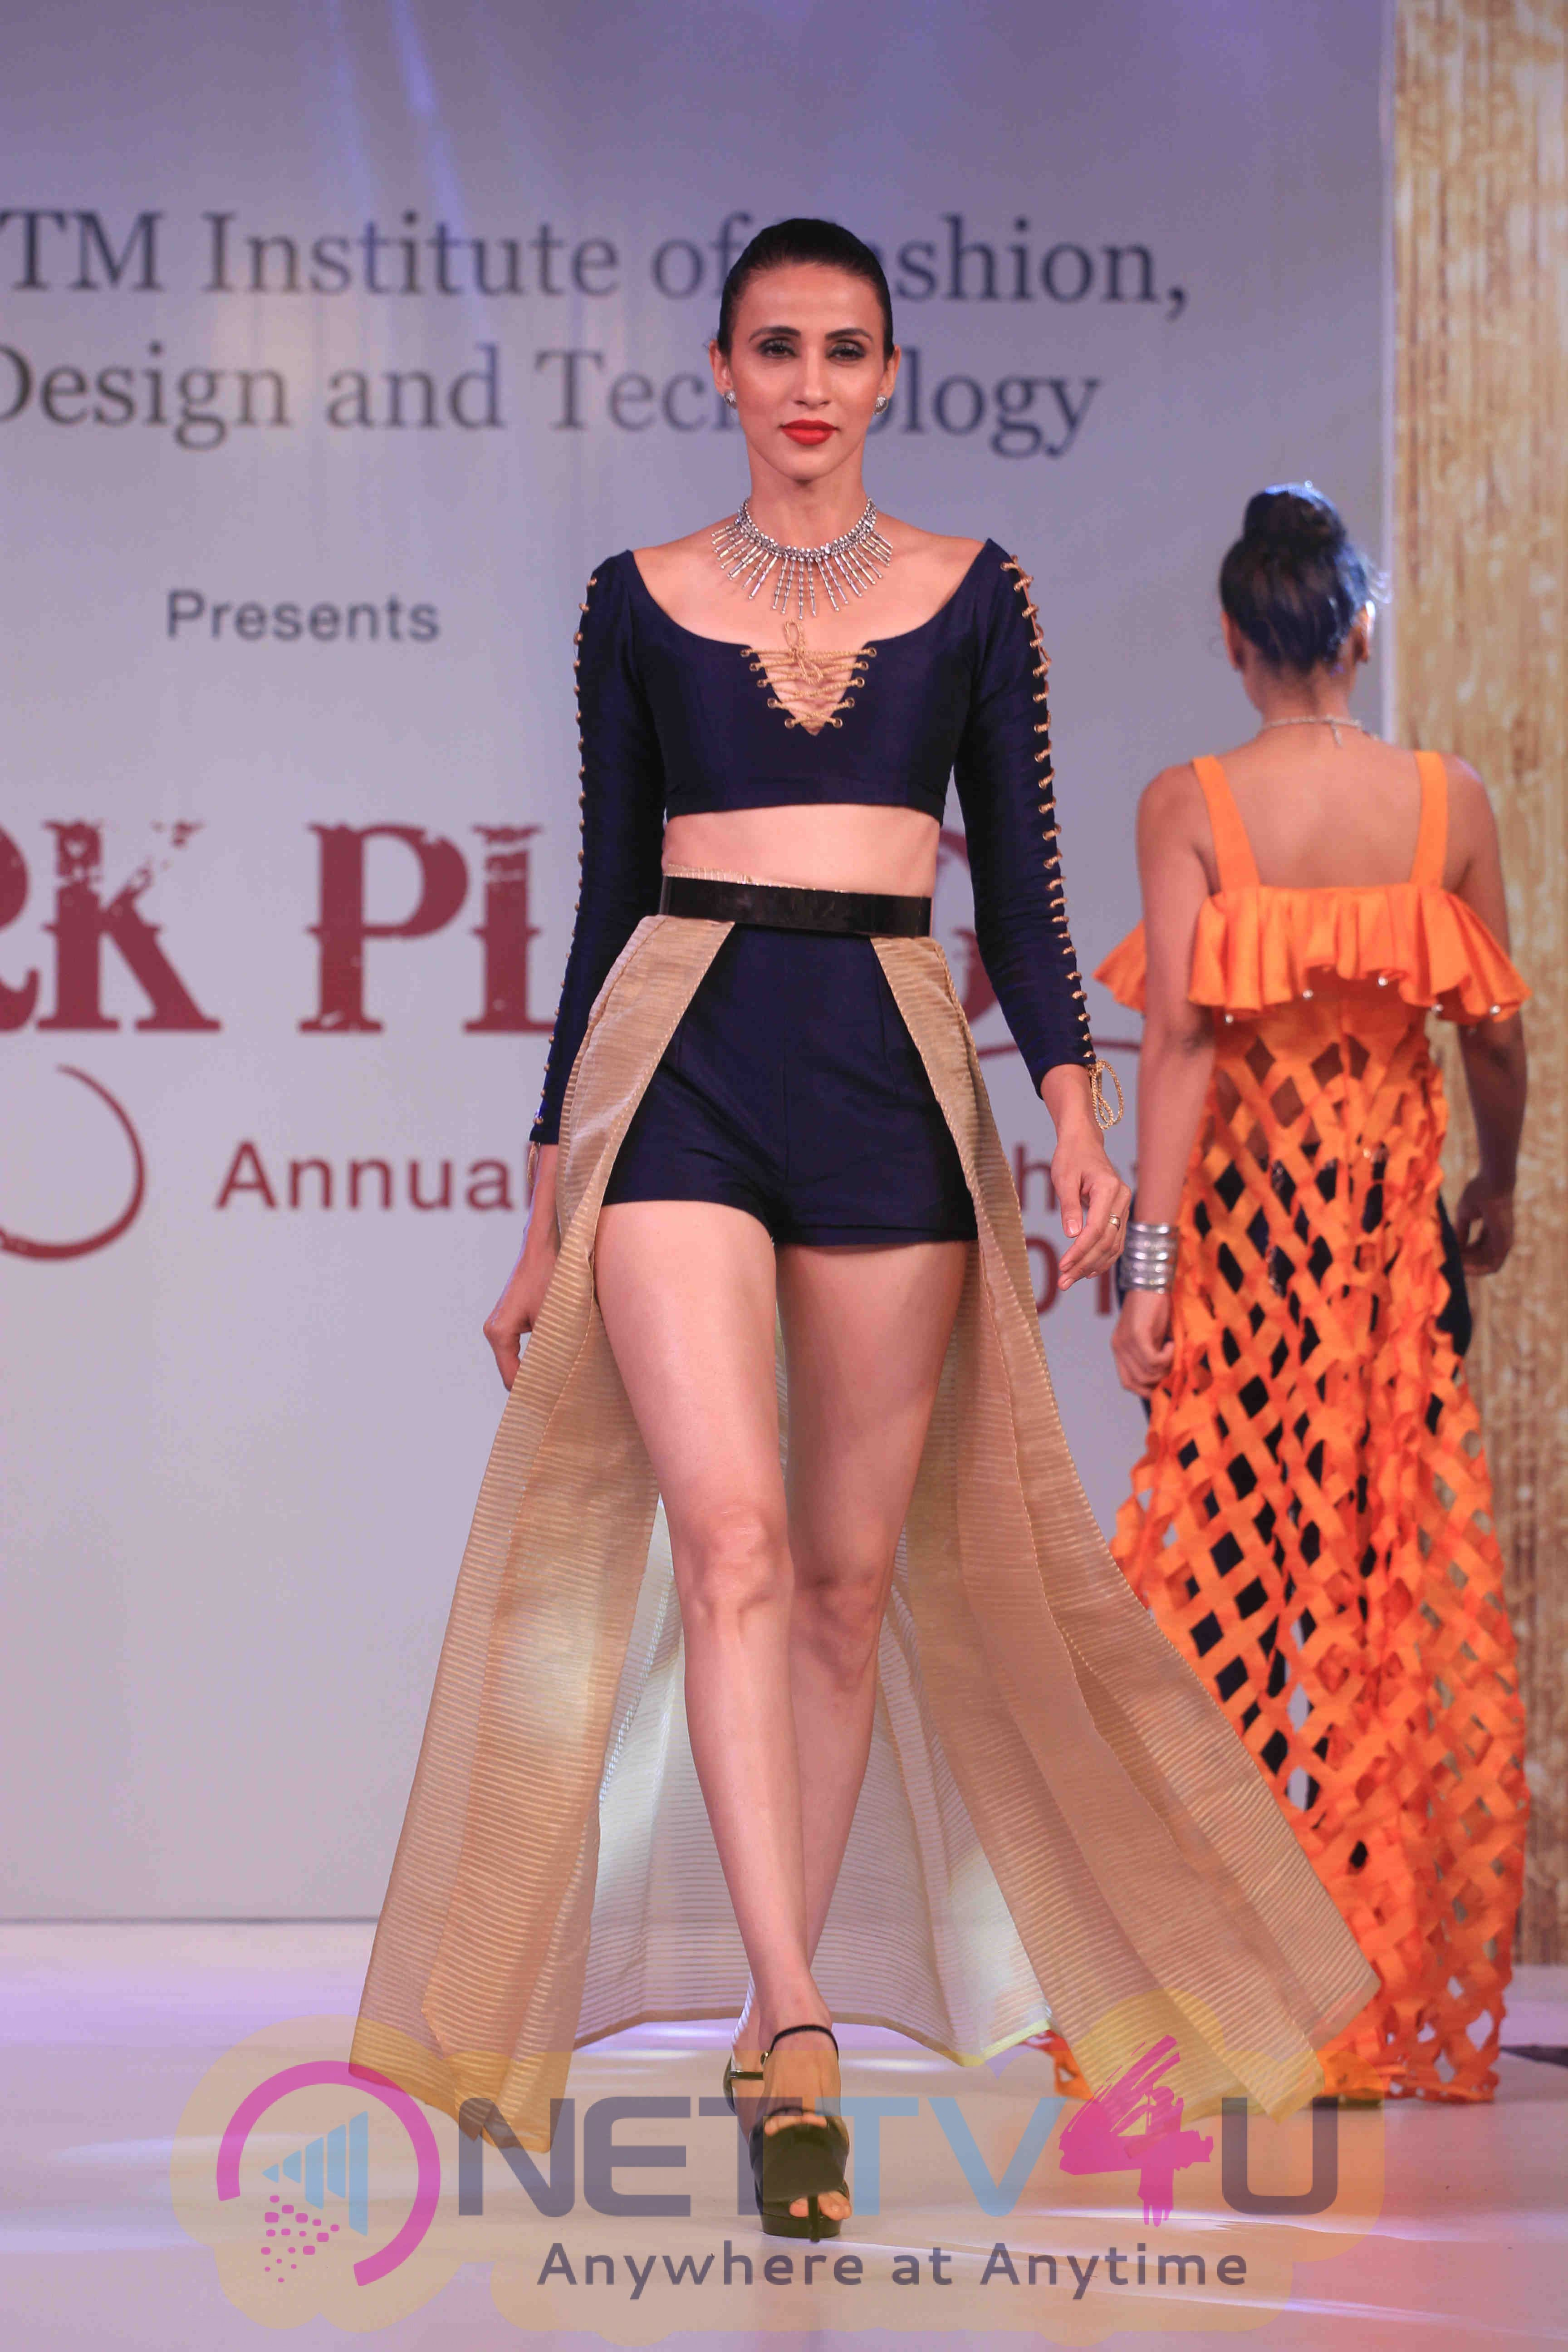 Itm Institute Of Fashion Design And Technology Invites You To Spark Plug Annual Design Show Good Looking Stills 291071 Movie Press Meet Pics Latest Event Images Stills